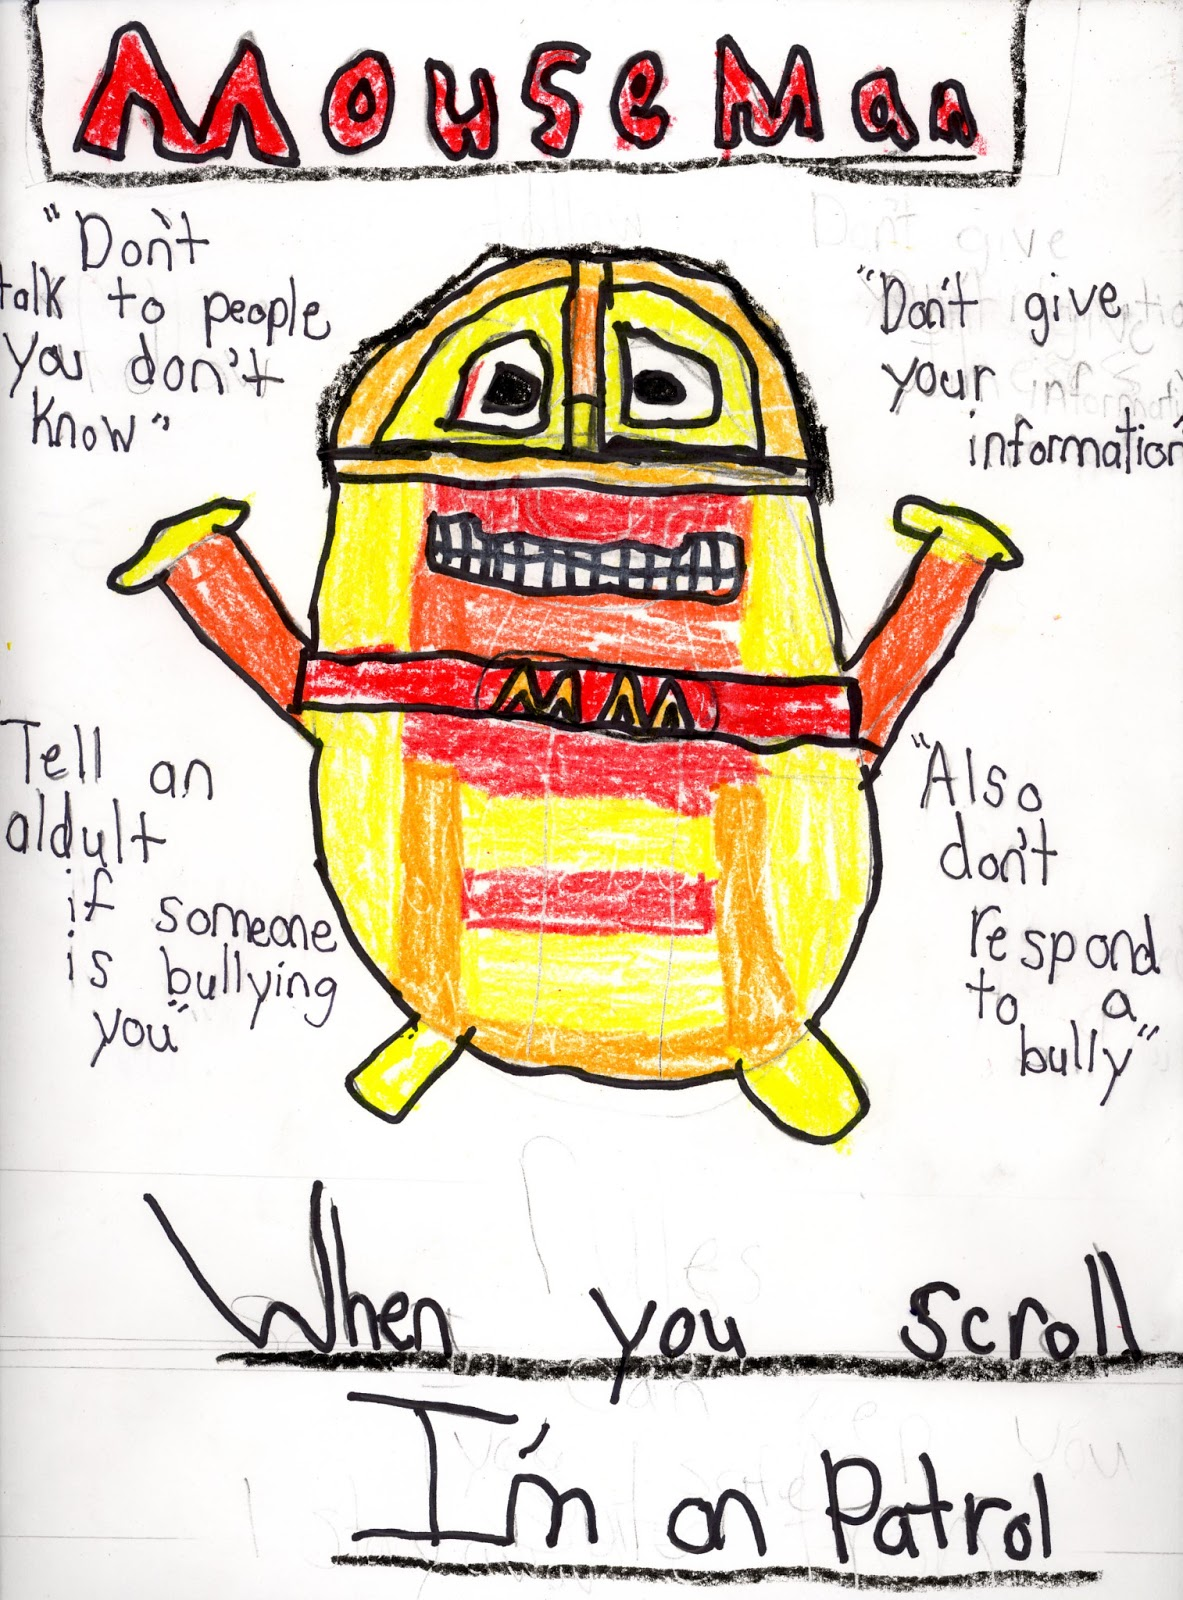 ashaway school library: internet safety poster contest!